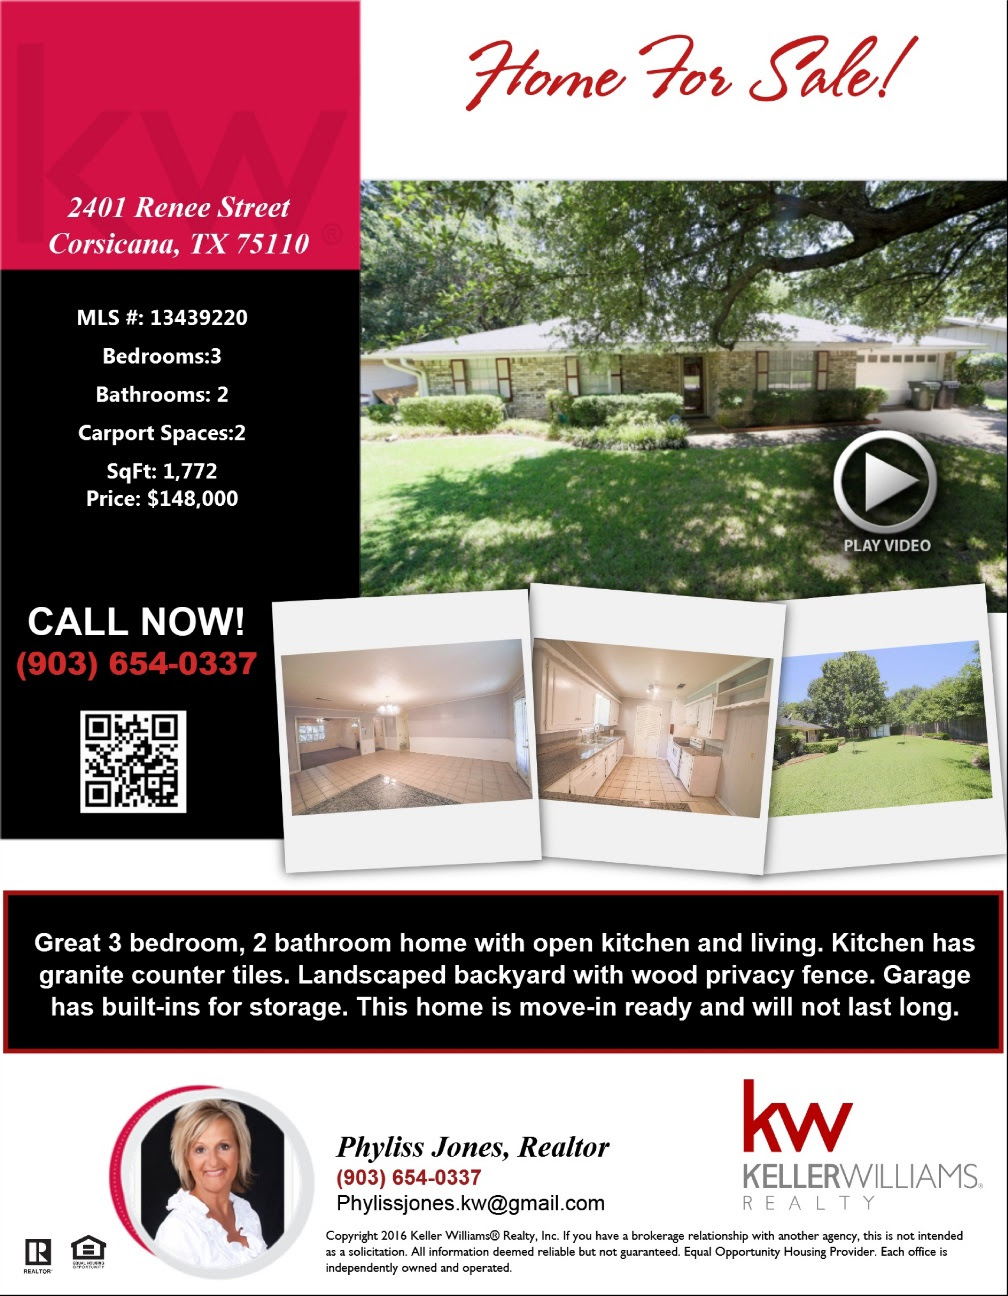 This home is move-in ready and will not last long. Please call me for more details Phyliss Jones (903) 654-0337.